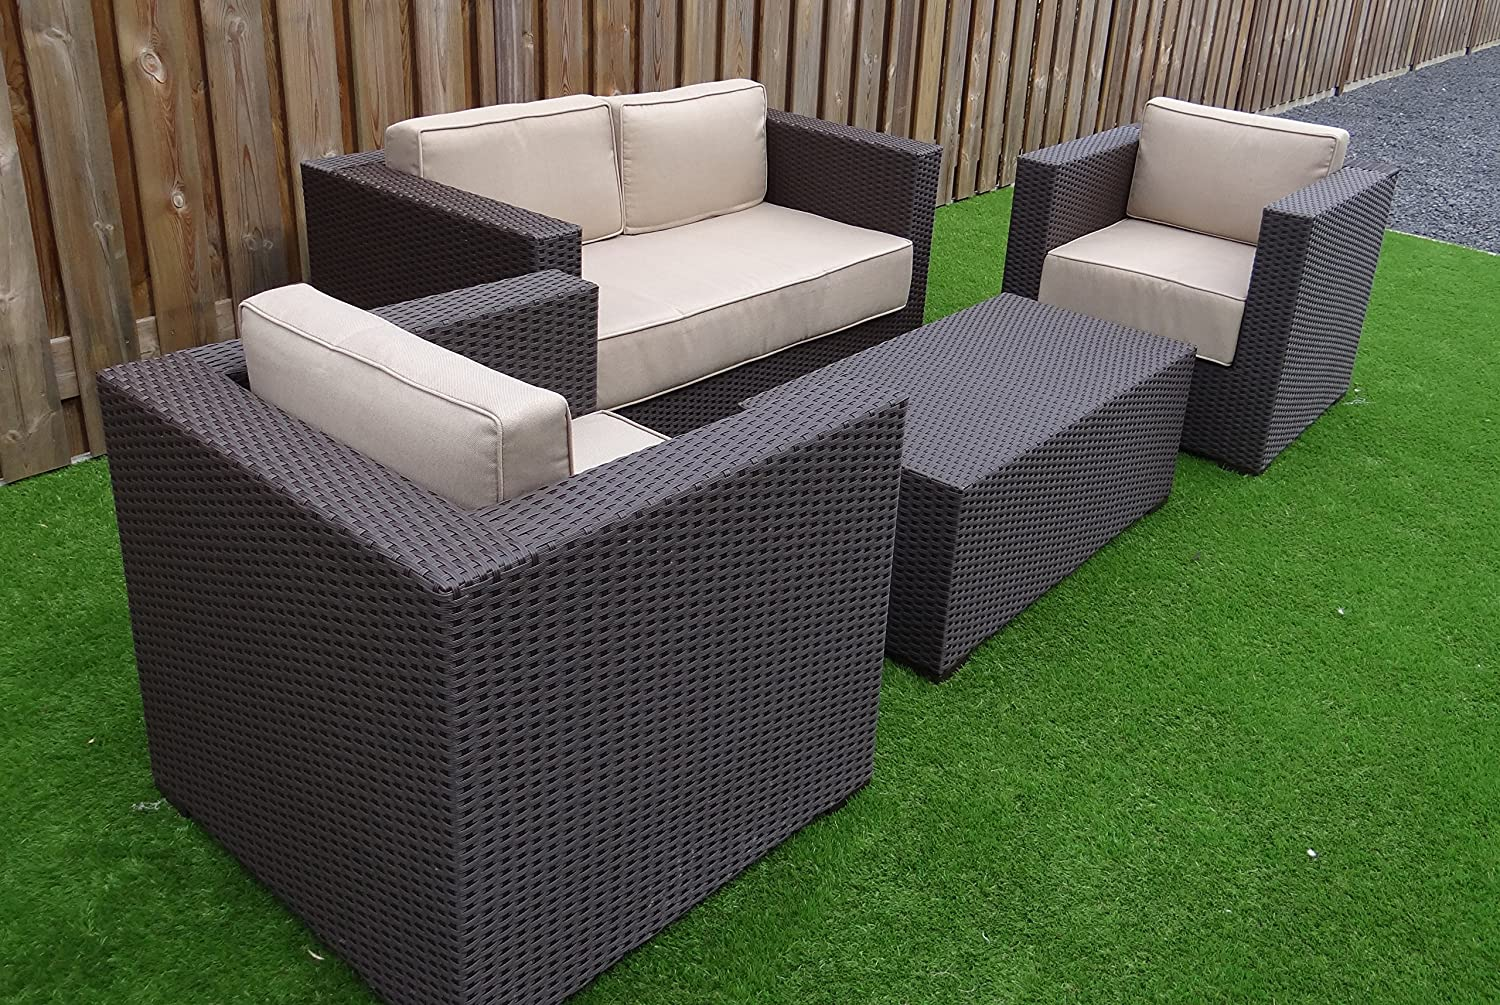 Loungemöbel outdoor schwarz  Deluxe Lounge Set Gruppe Garnitur Gartenmöbel Loungemöbel ...